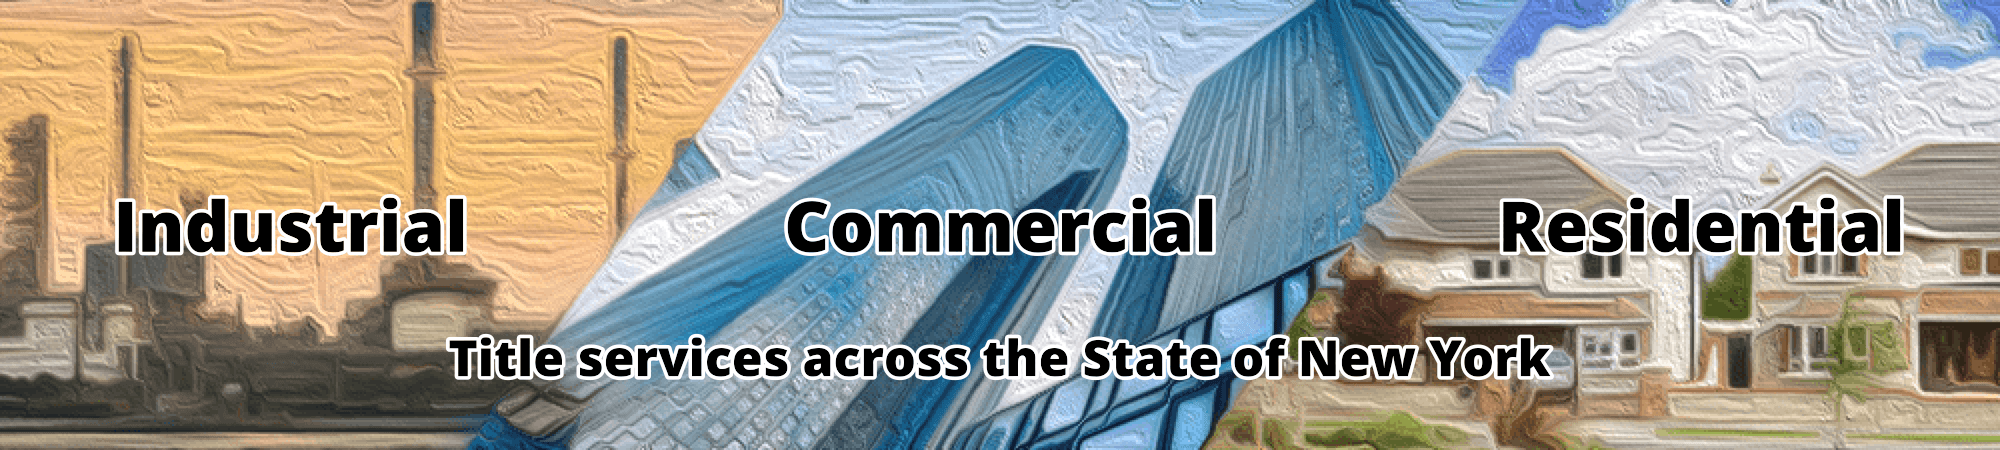 Industrial Commercial Residential Title Services Across the State of New York Banner